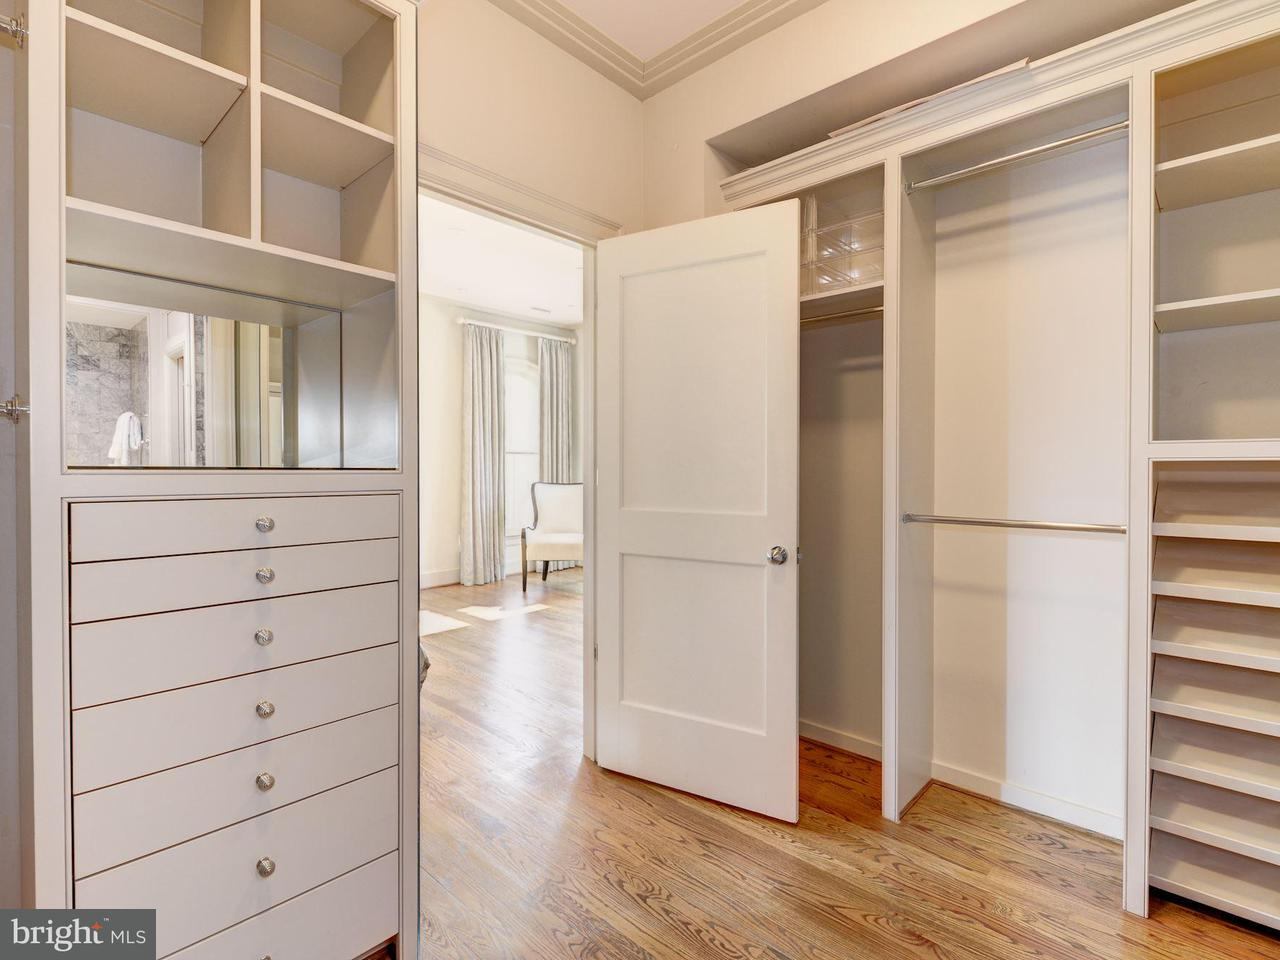 Additional photo for property listing at 1230 27TH ST NW 1230 27TH ST NW Washington, District Of Columbia 20007 United States